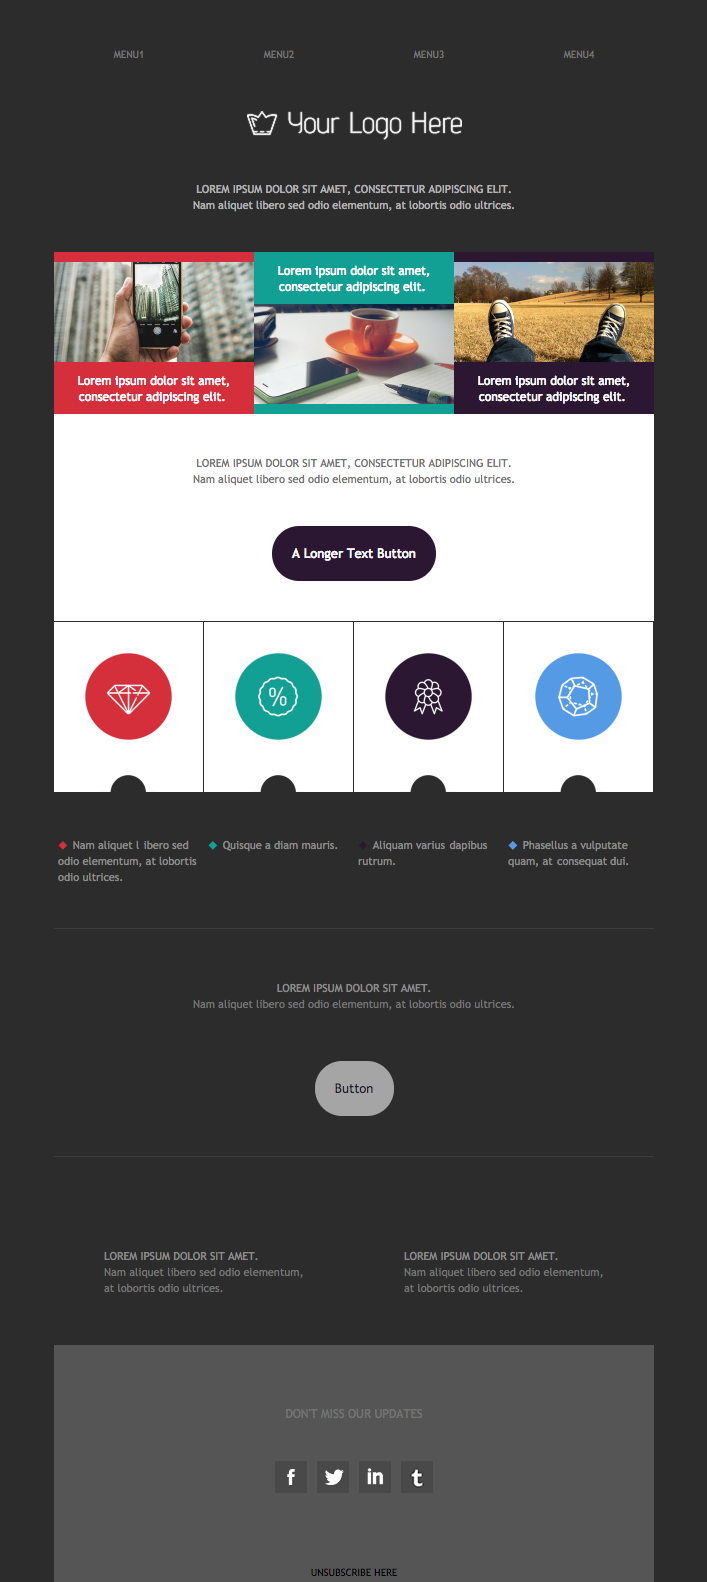 new feature promo email design